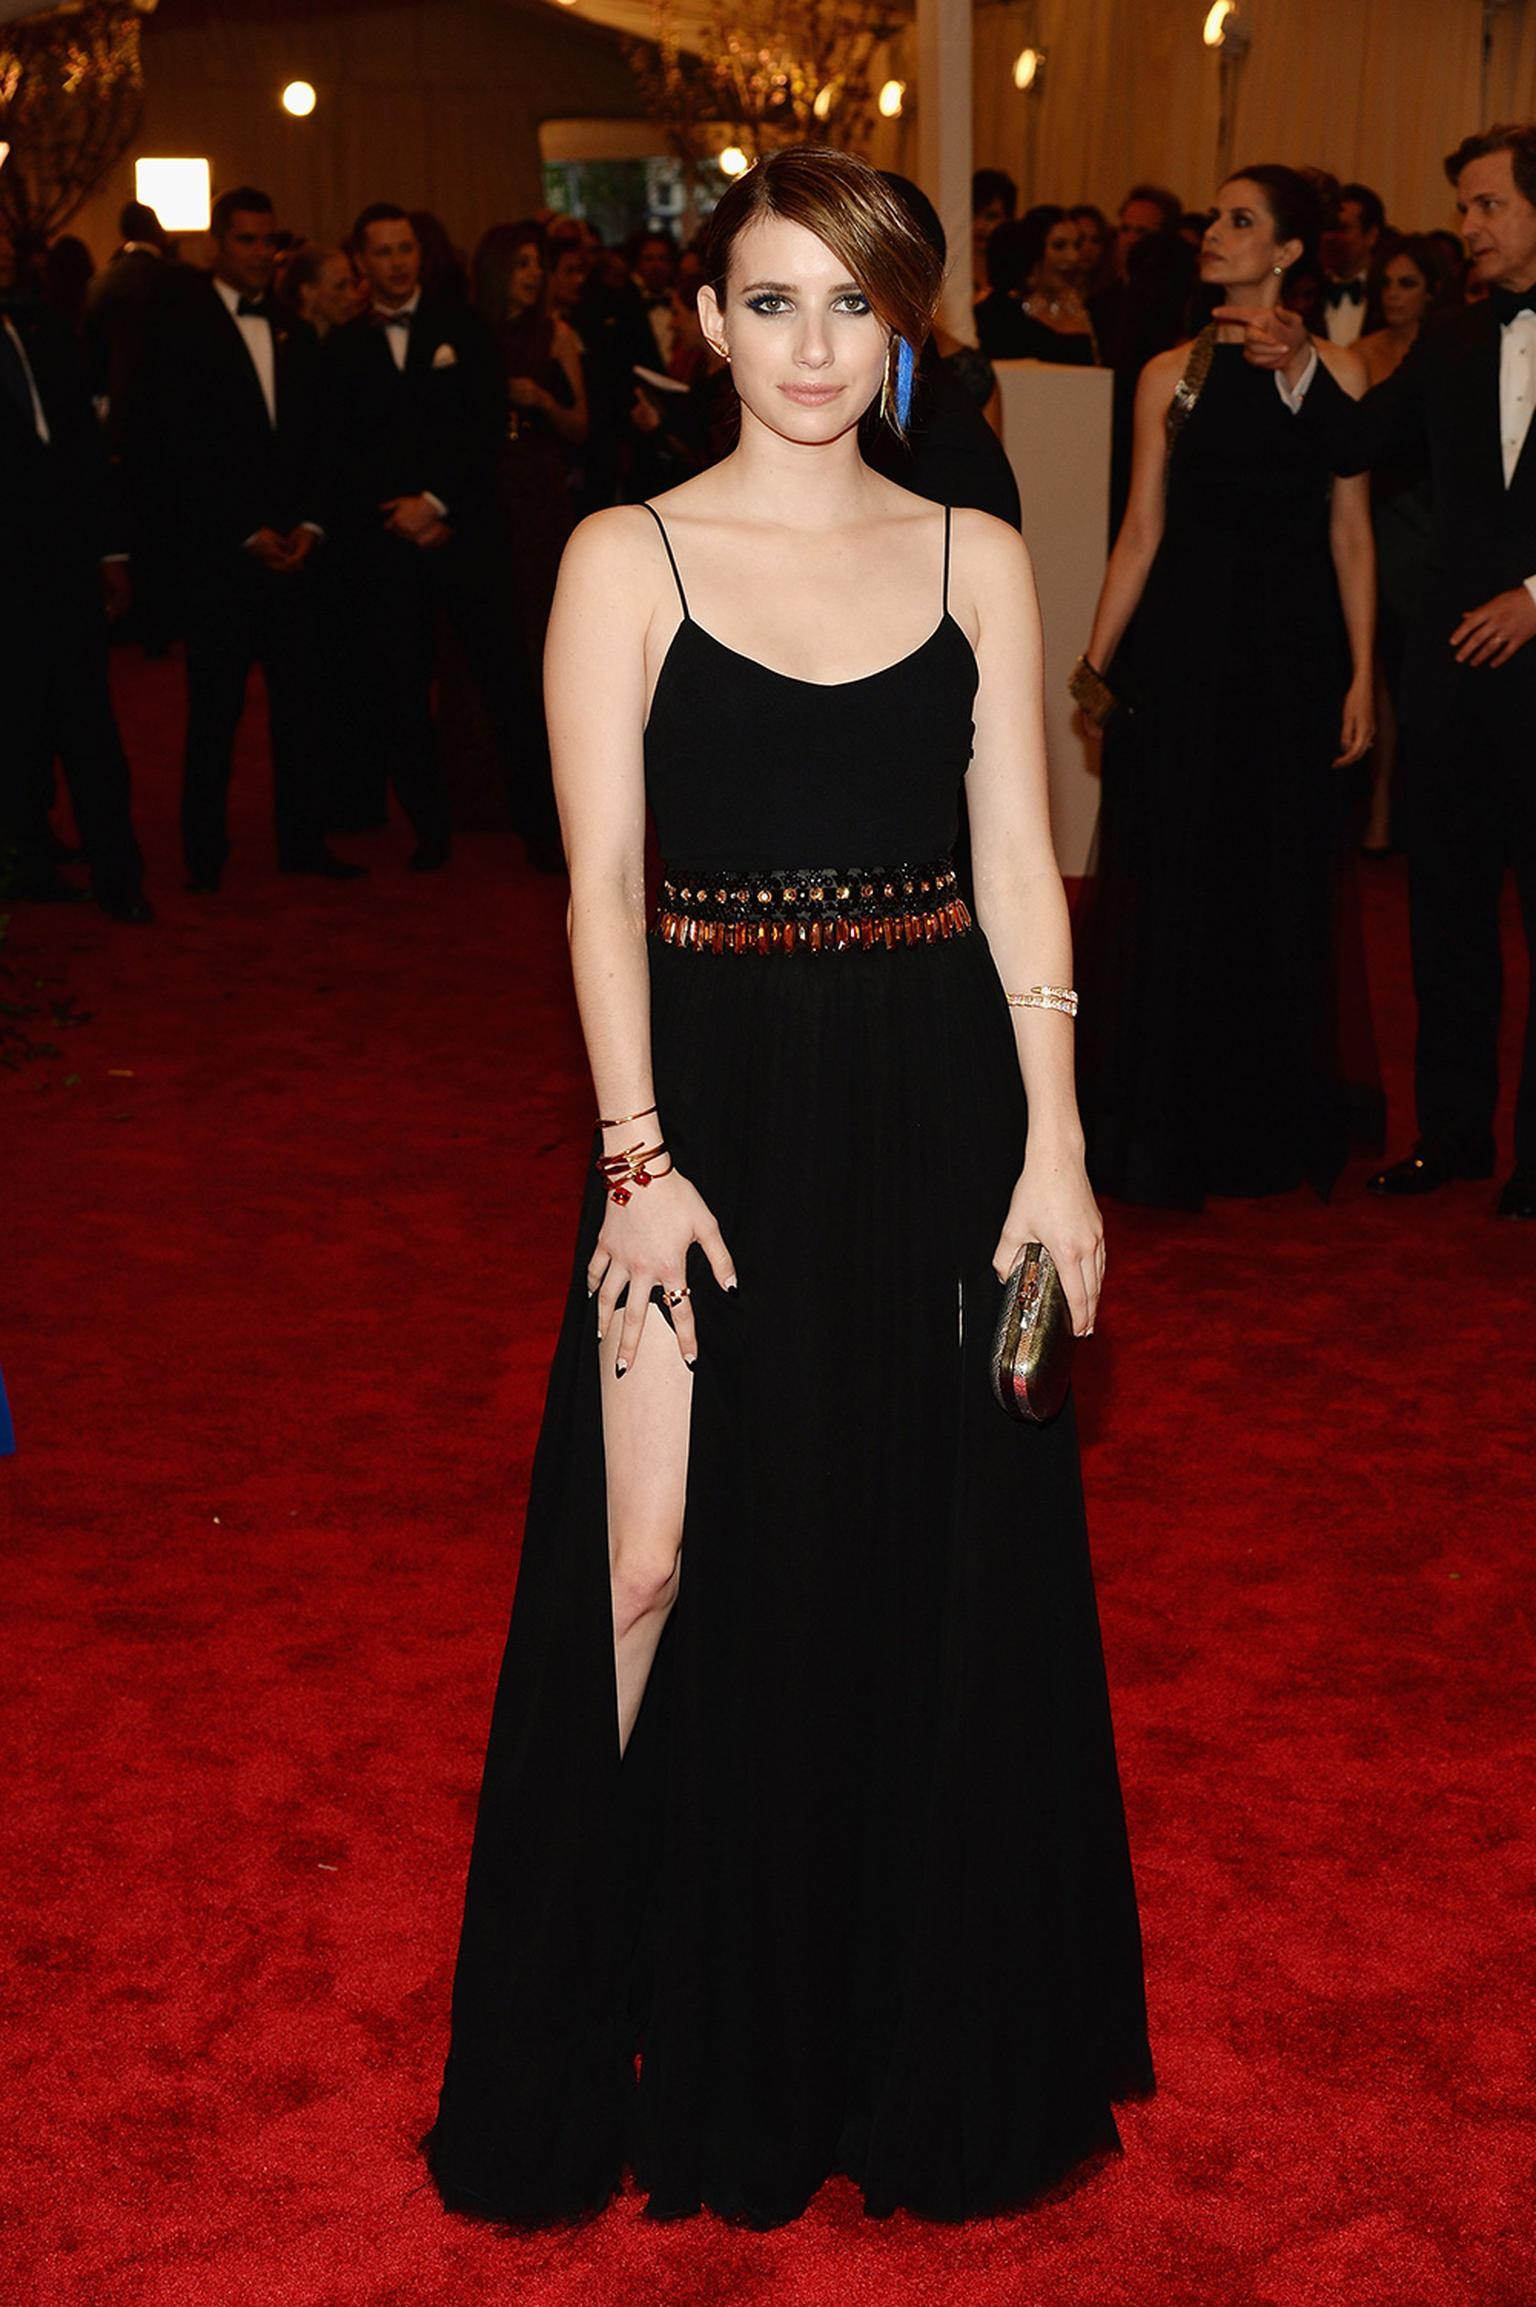 The punk theme at the 2013 Met Ball meant some exciting jewels on the red carpet